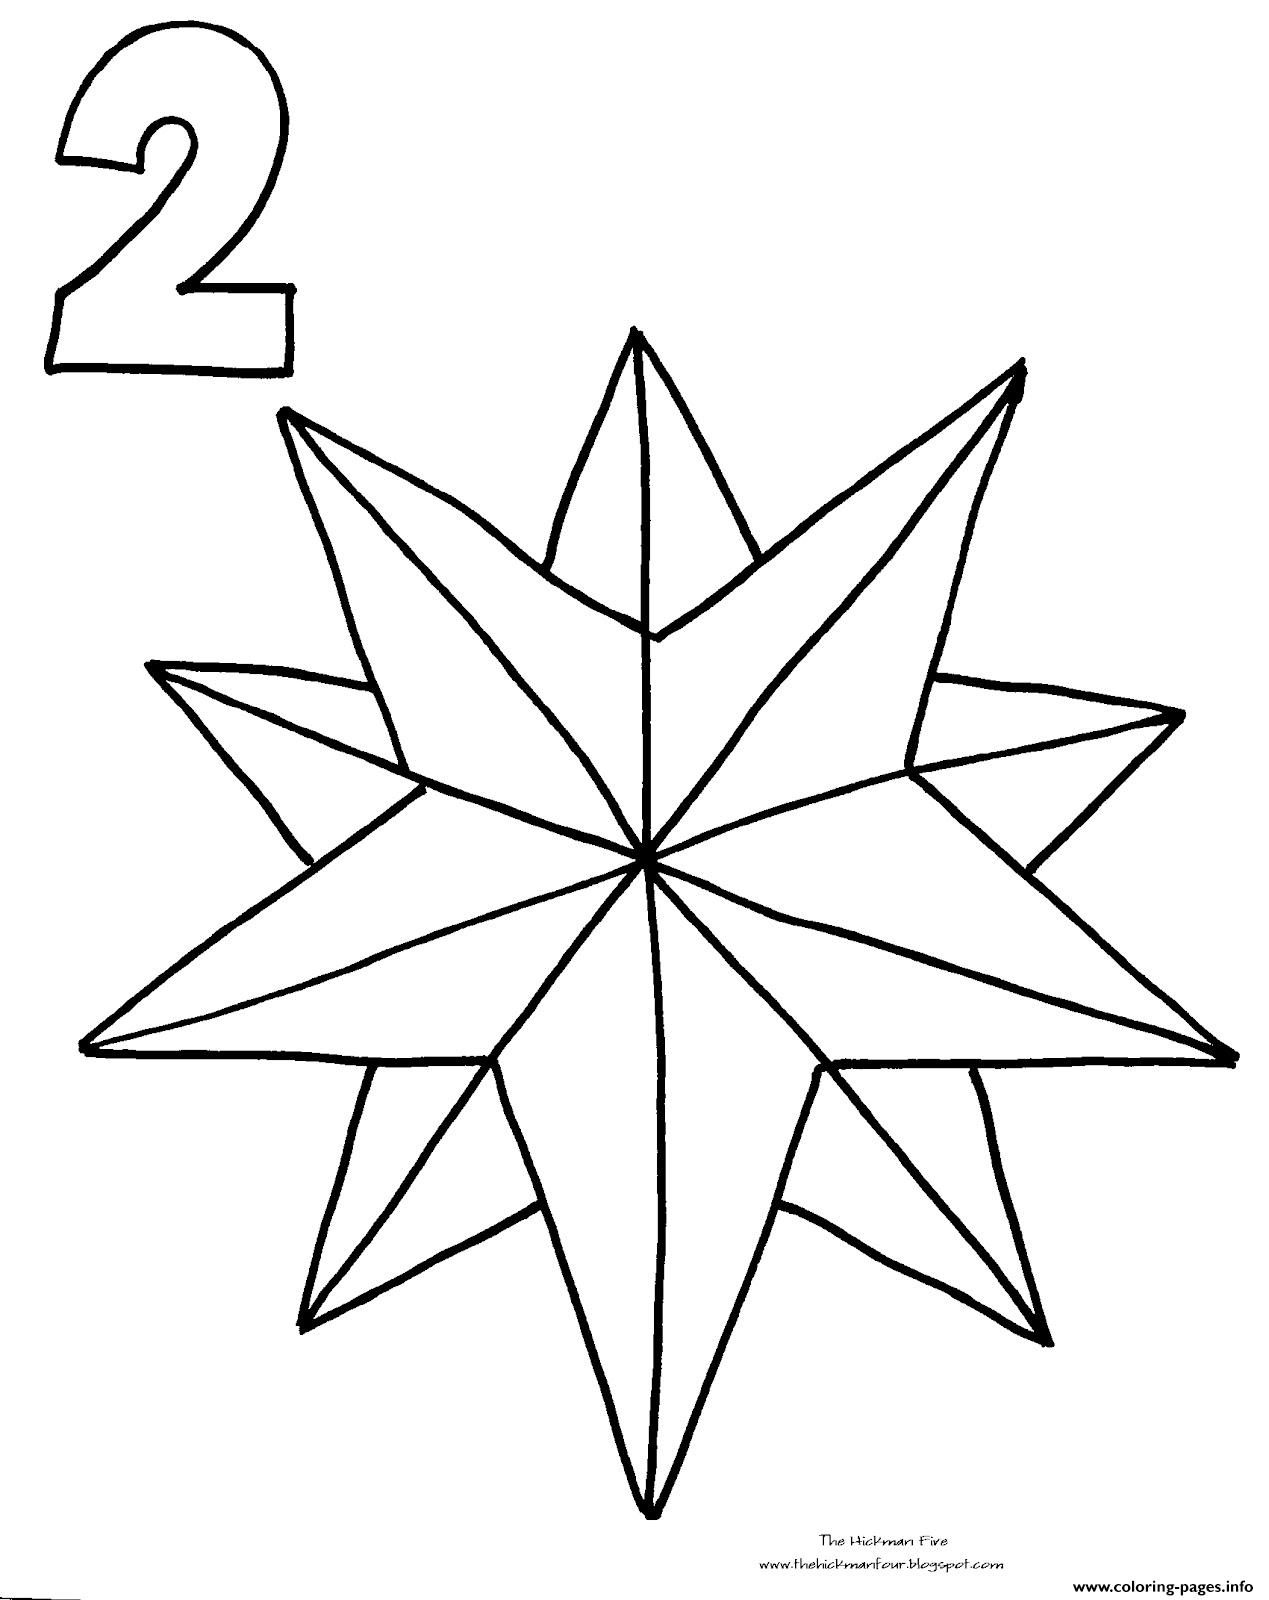 graphic about Star Coloring Pages Printable called Patrick Star Coloring Internet pages at  No cost for